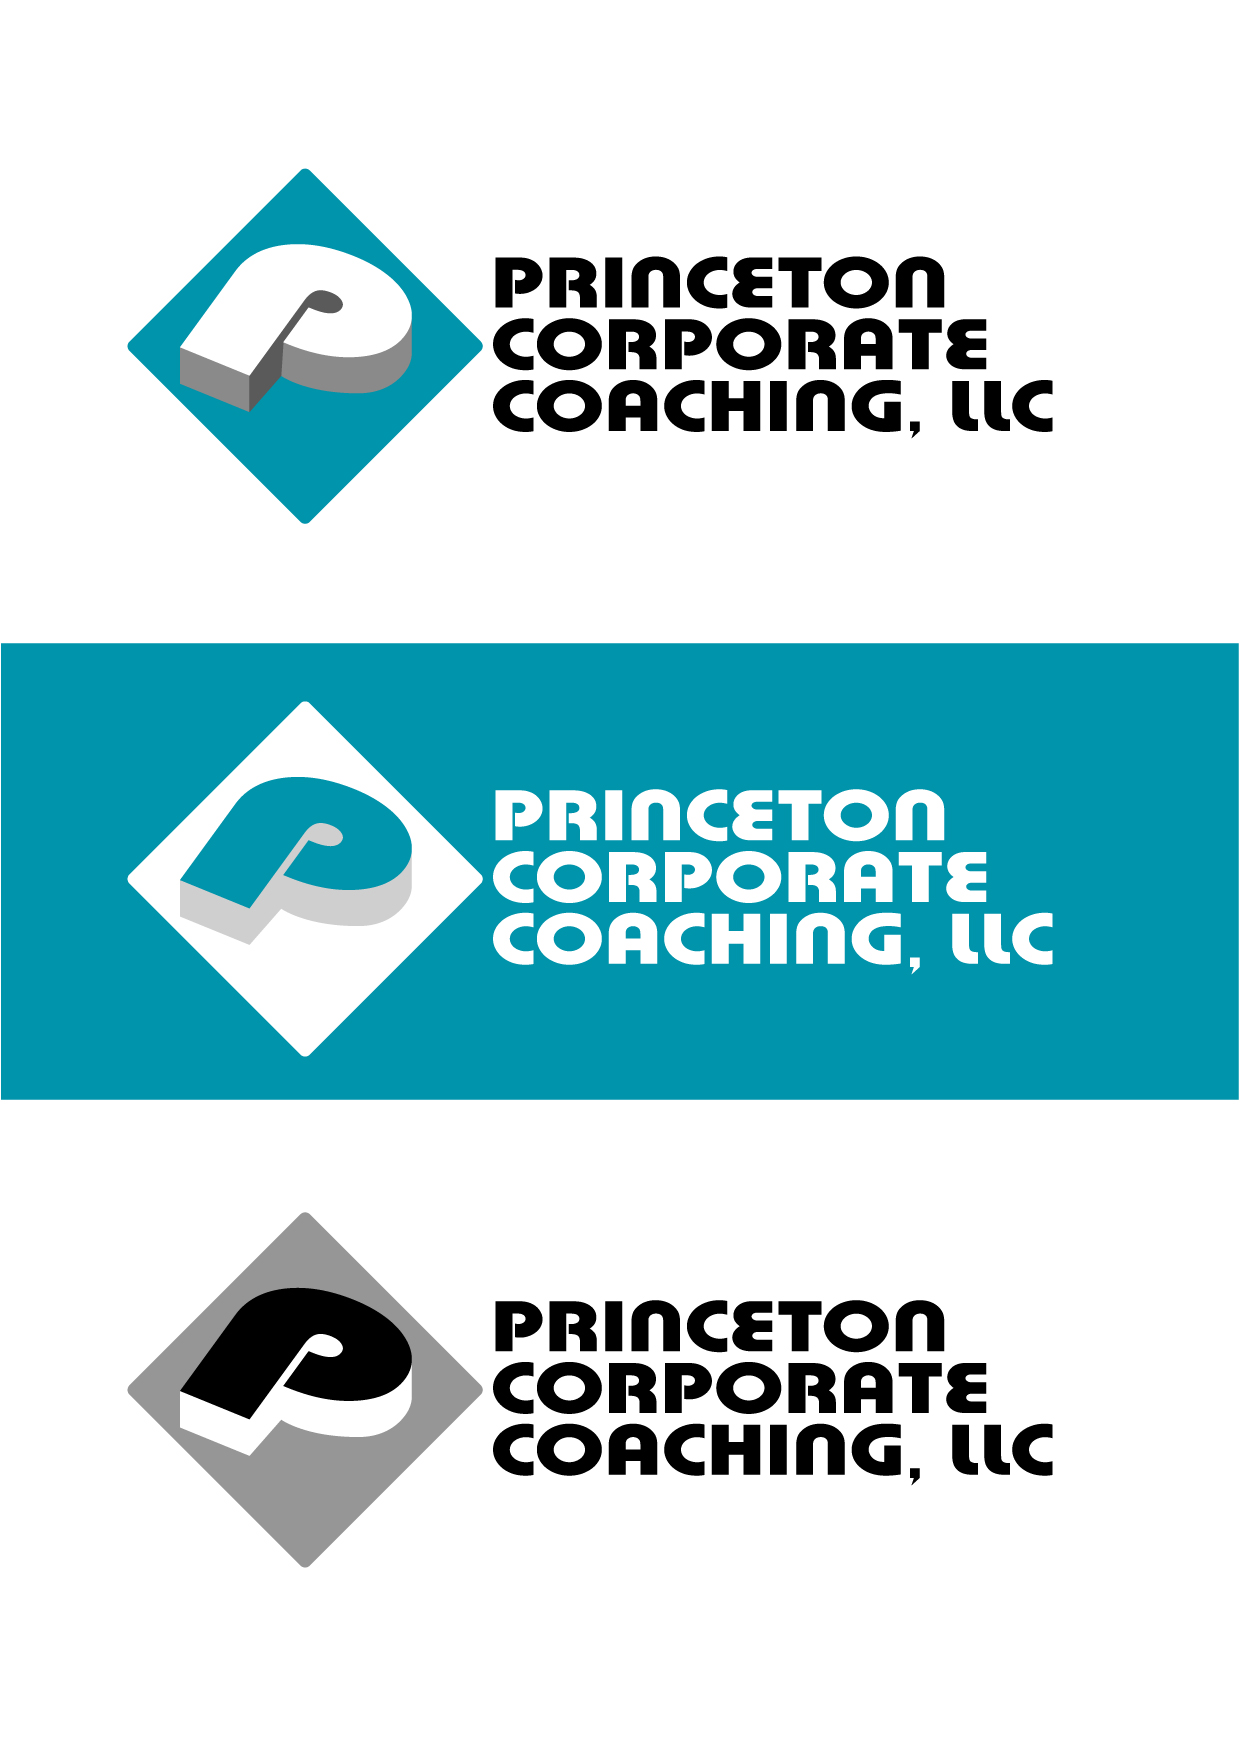 Logo Design by Wilfredo Mendoza - Entry No. 89 in the Logo Design Contest Unique Logo Design Wanted for Princeton Corporate Coaching, LLC.